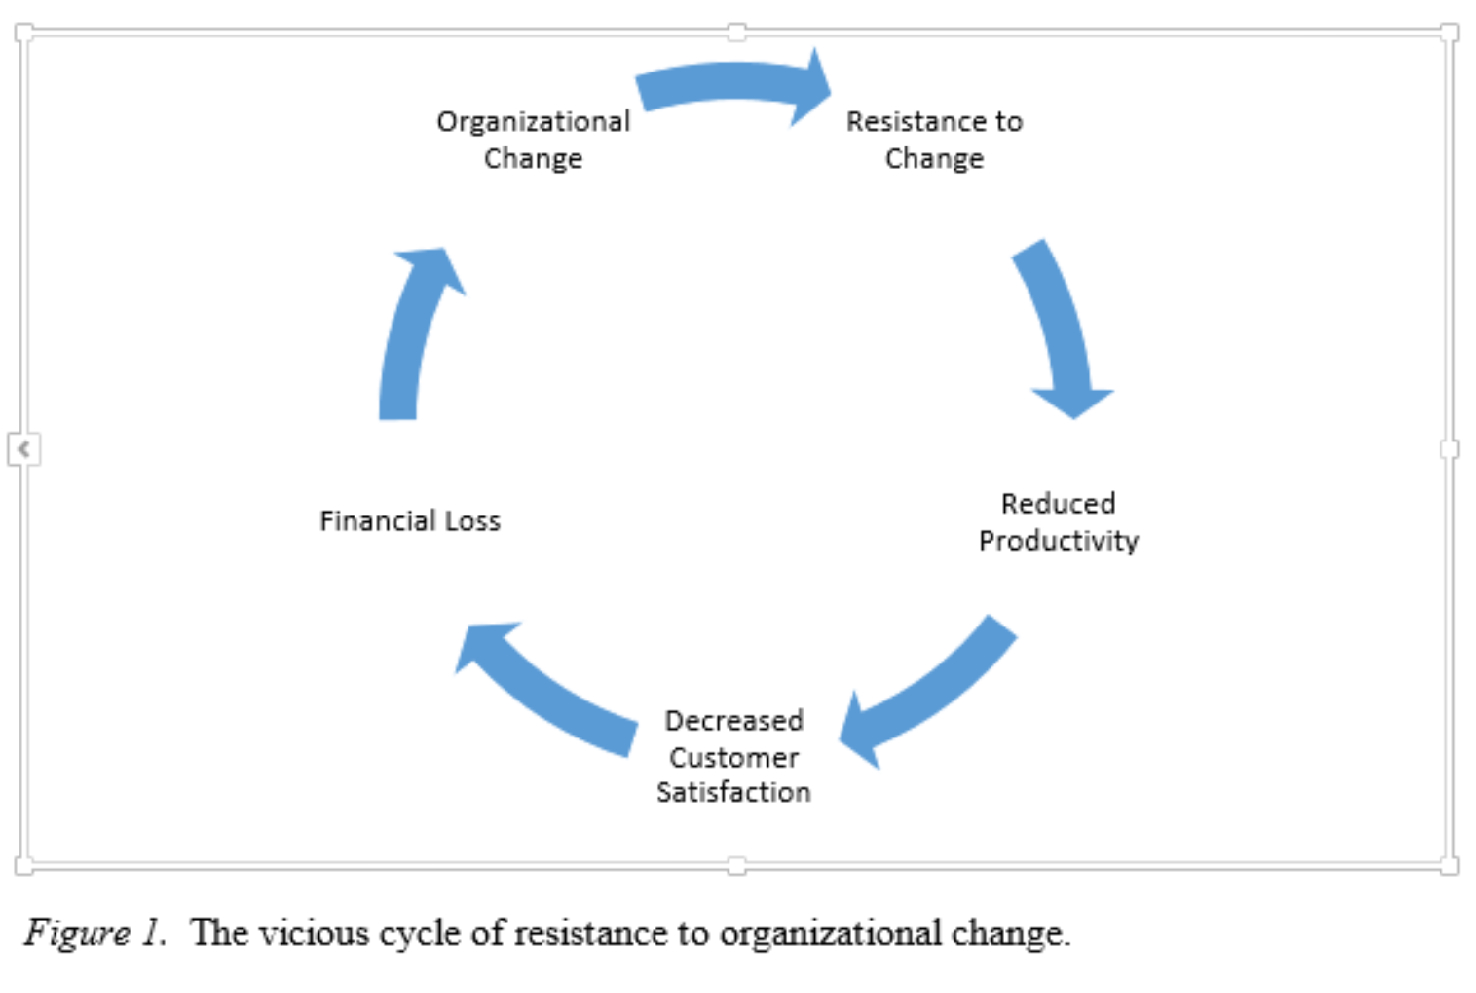 Organizational Change The Vicious Cycle of Resistance